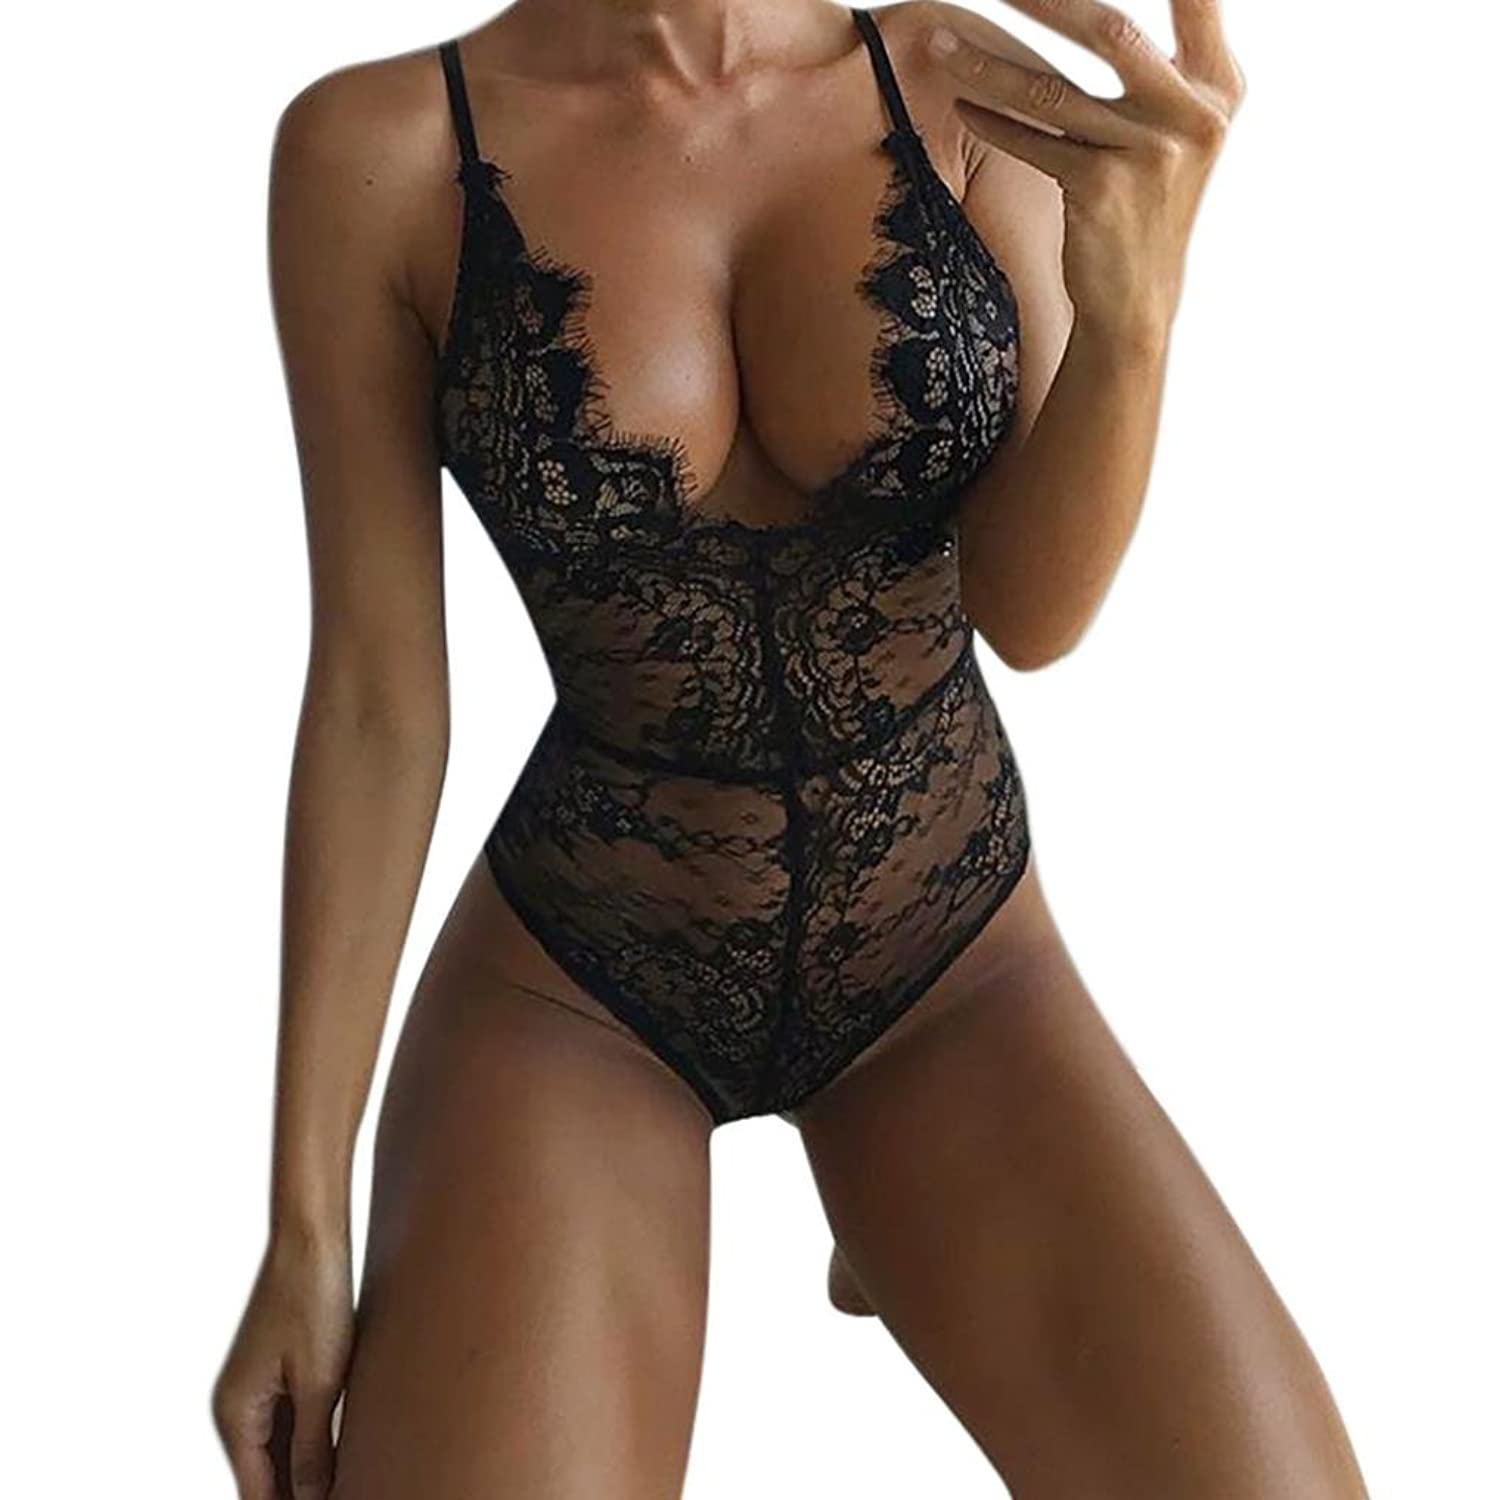 Amazon.com: Tsmile Clearance❤ /Womens Lingerie/Hot Sale✿/Temptation Underwear/Corset {Lace} {Muslin Bodysuit}Sleepwear: Clothing